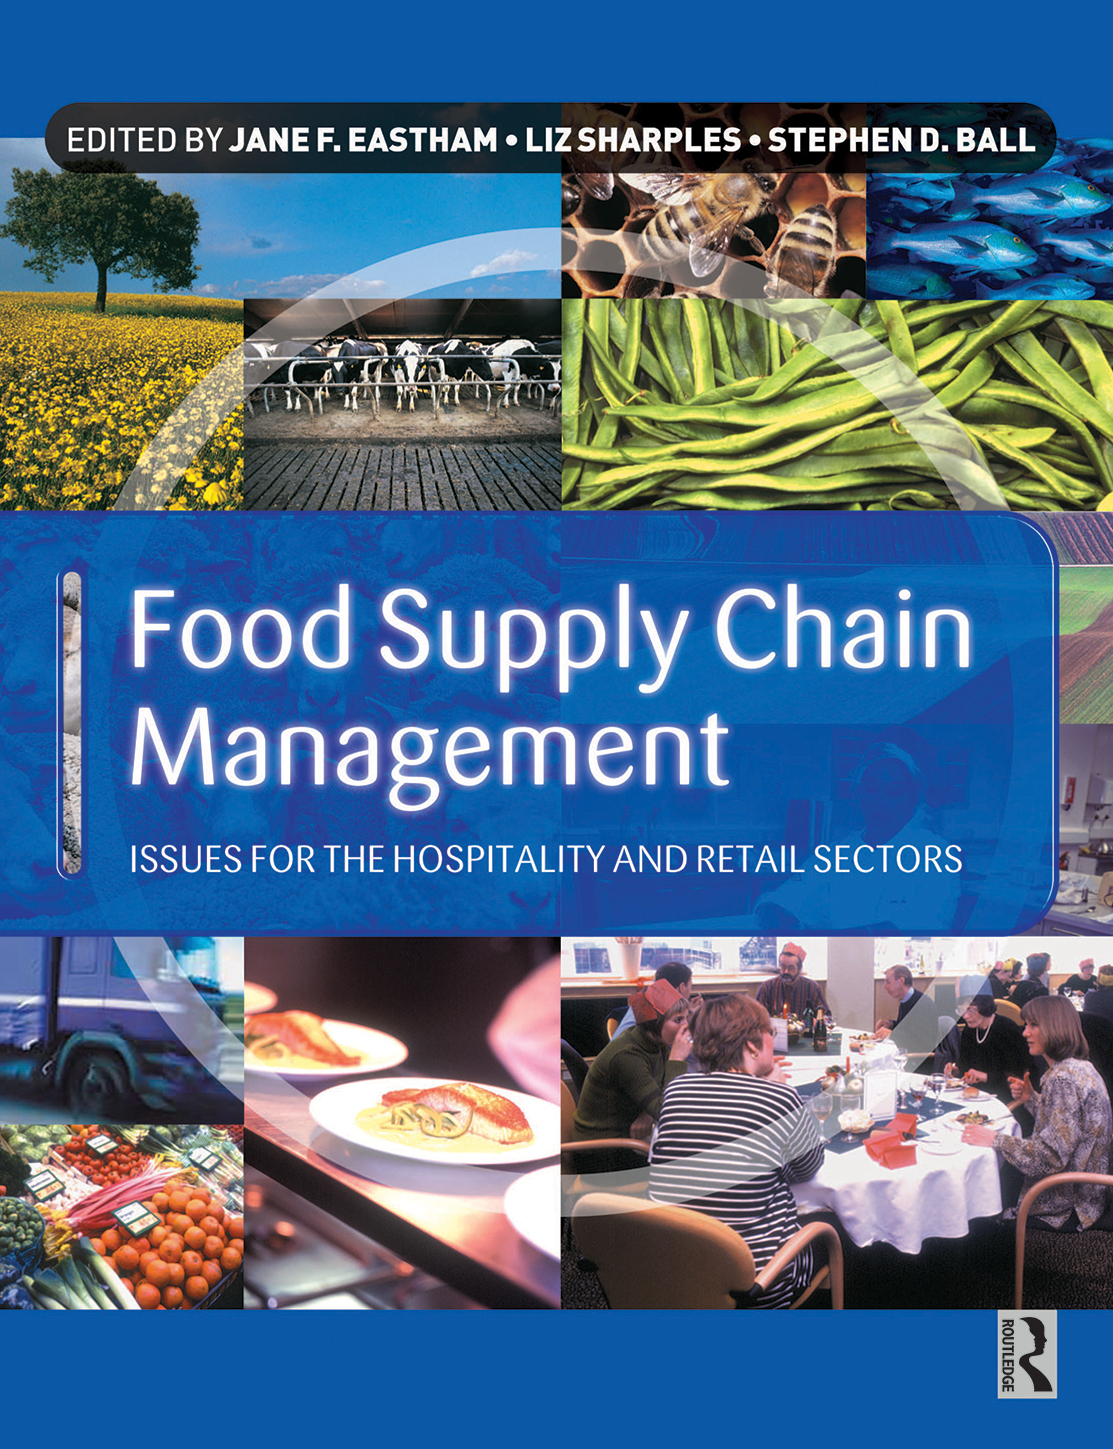 Download Ebook Food Supply Chain Management by Jane Eastham Pdf